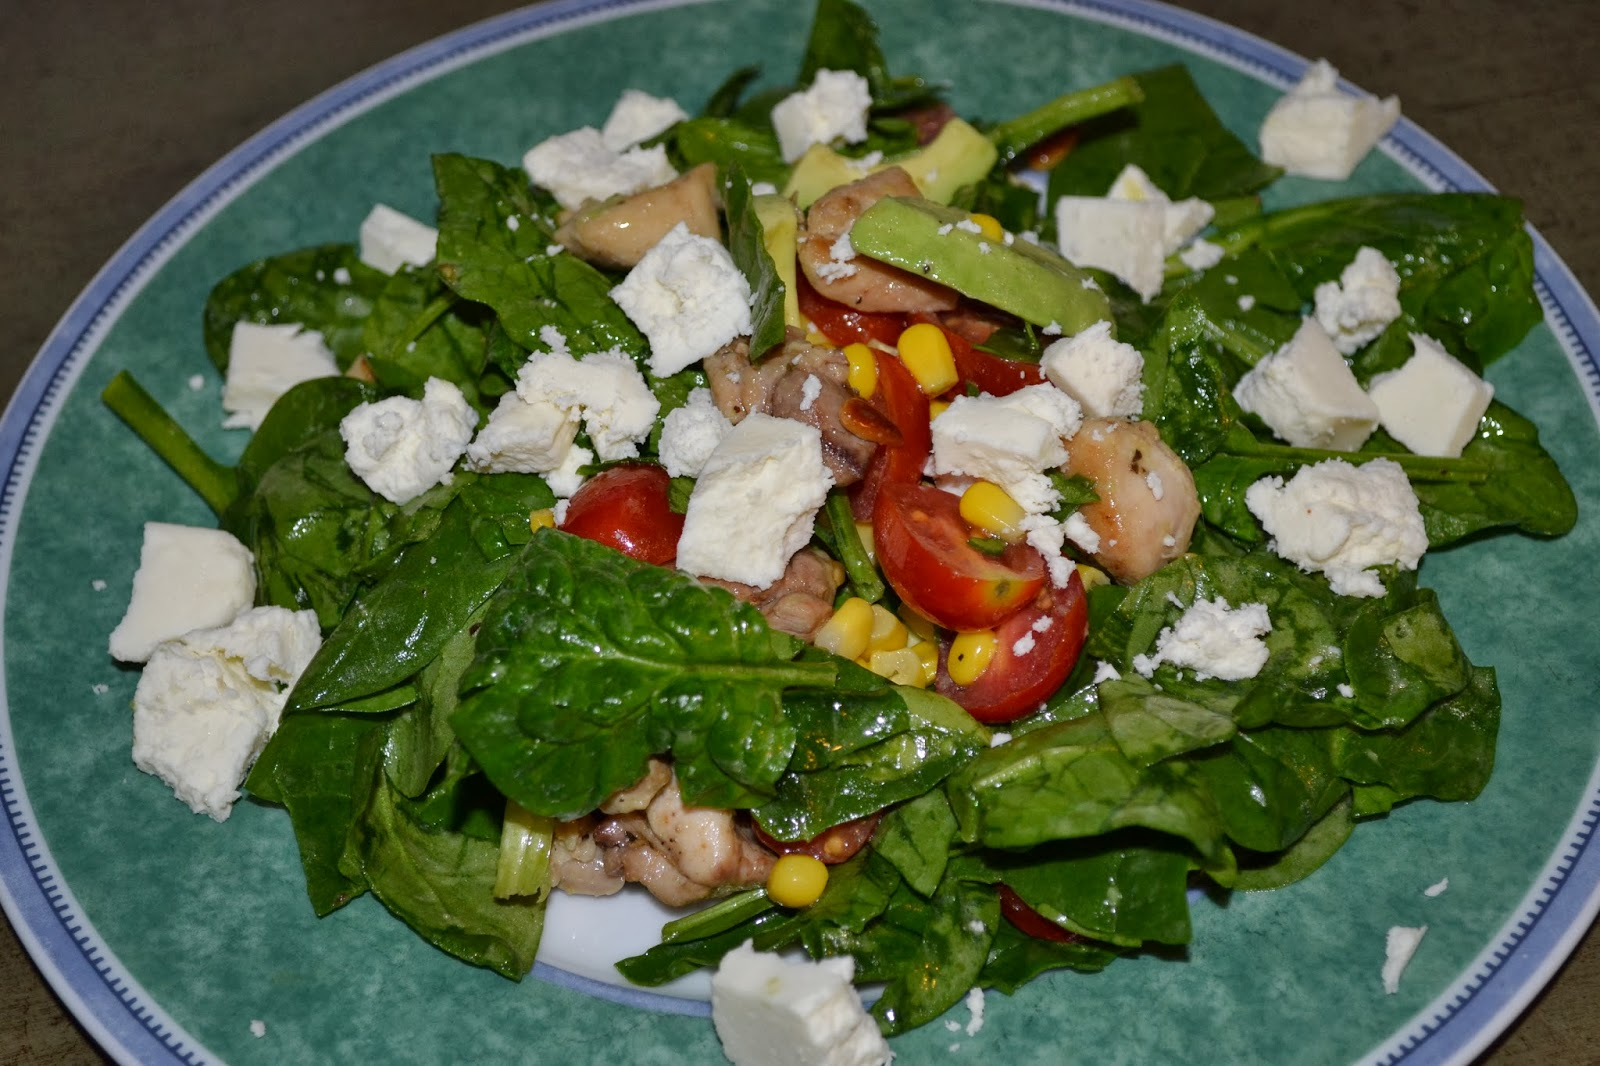 ... Recipe Reviews: Spinach Salad with Chicken, Avocado and Goat Cheese